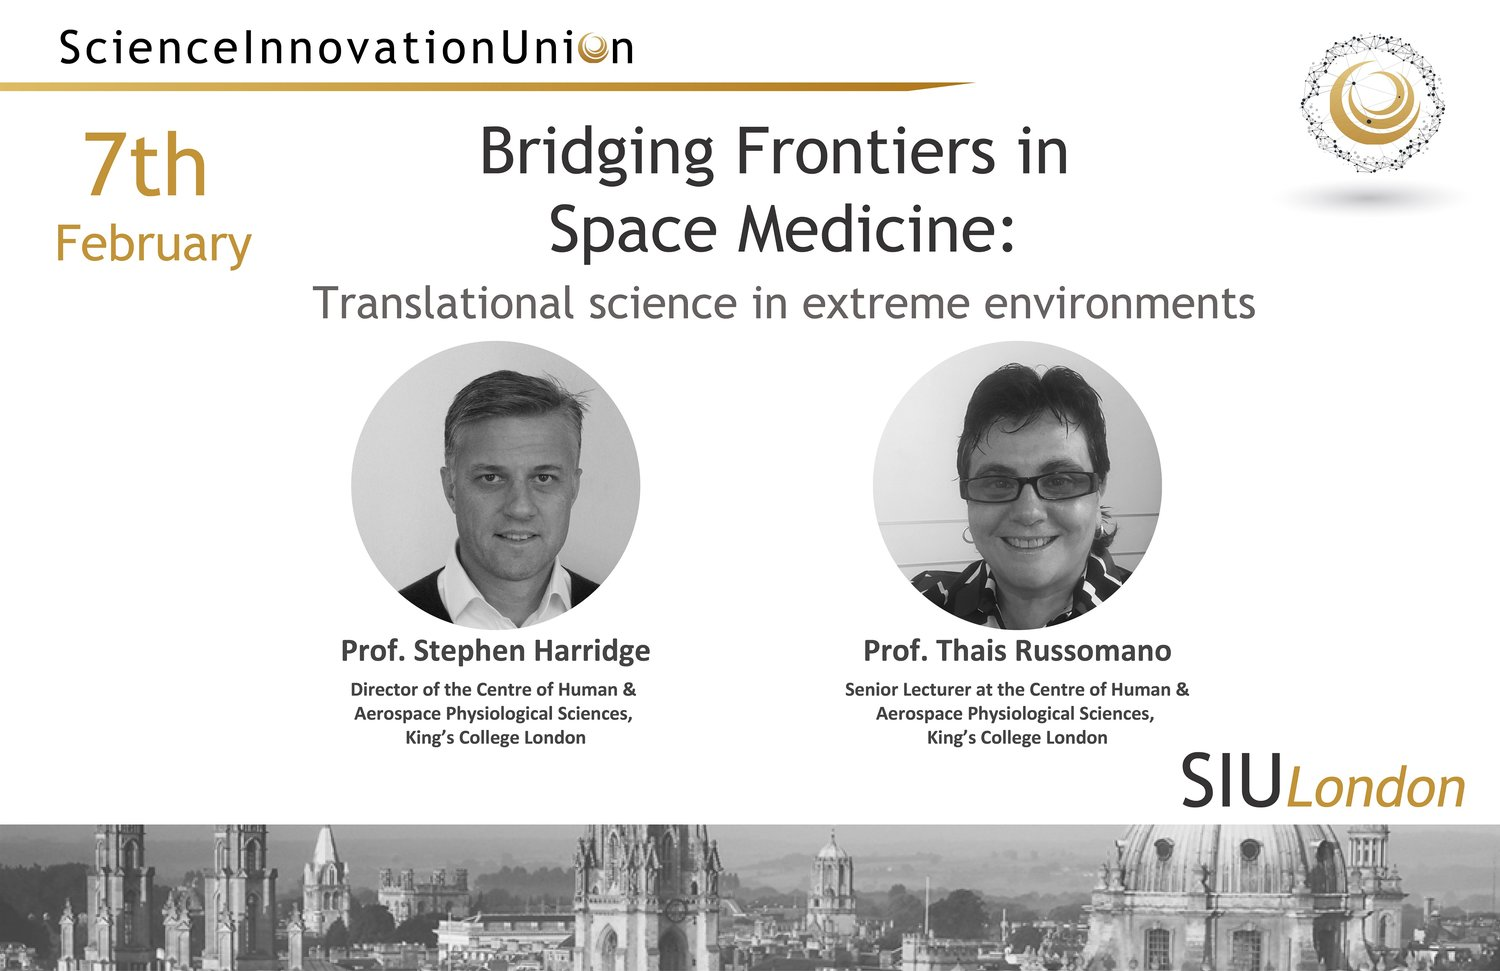 Bridging Frontiers in Space Medicine: Translational science in